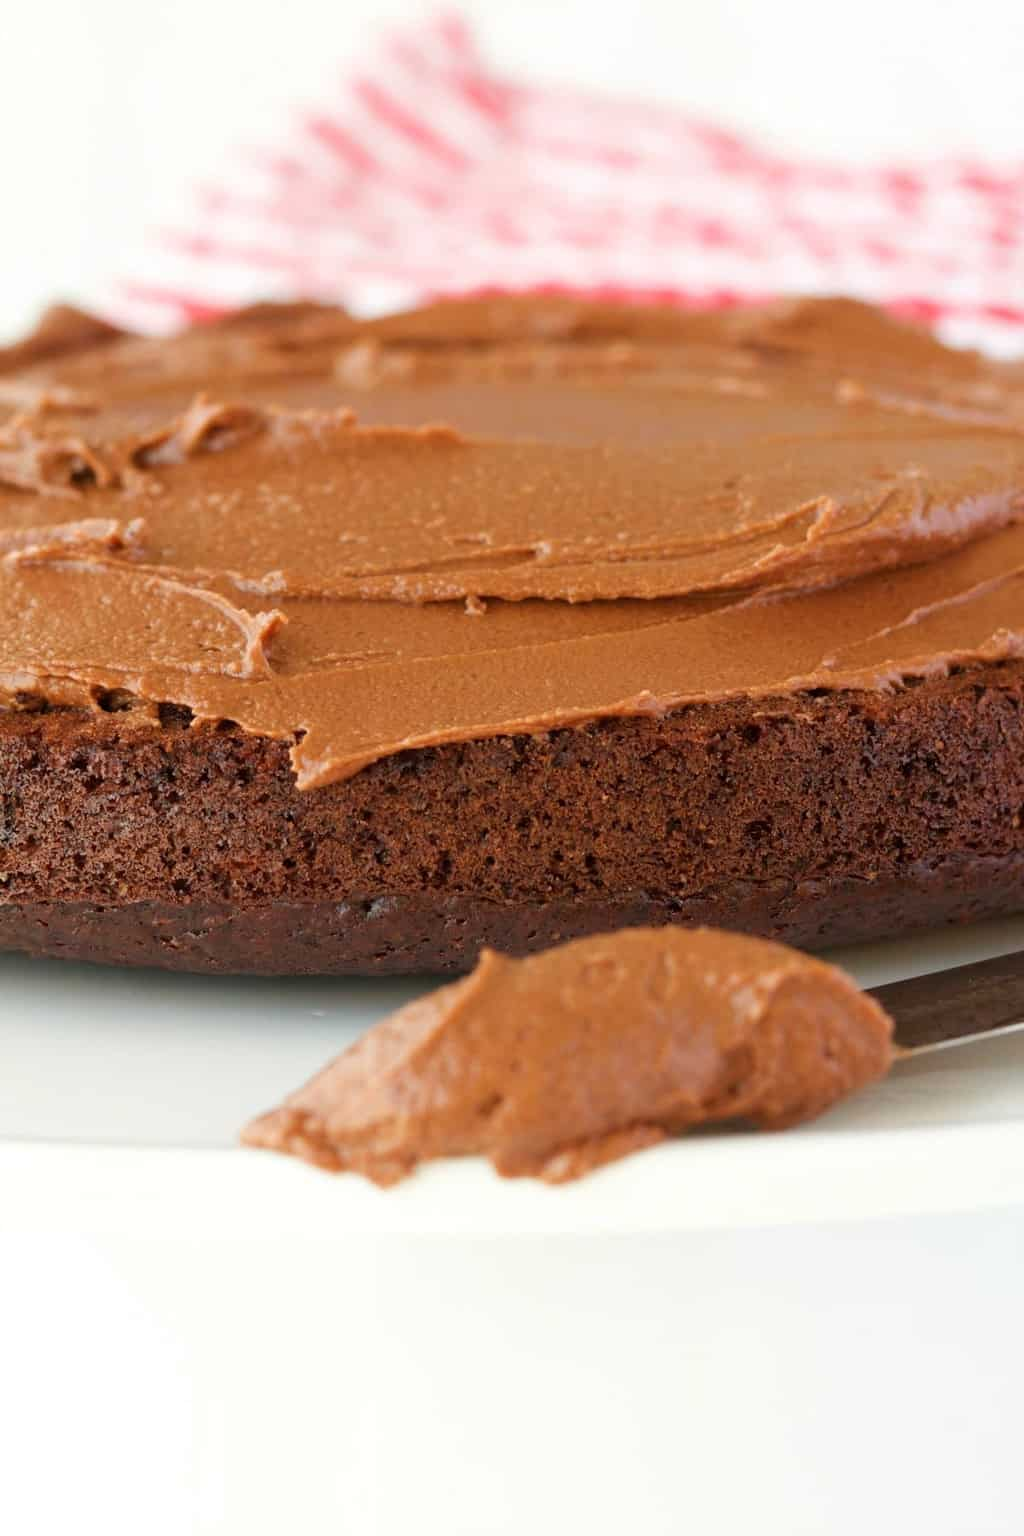 5-ingredient Vegan Chocolate Frosting recipe that is ready in minutes. Perfect for use on cakes, cupcakes and cookies. #vegan #lovingitvegan #veganfrosting #vegandessert #chocolatefrosting | lovingitvegan.com